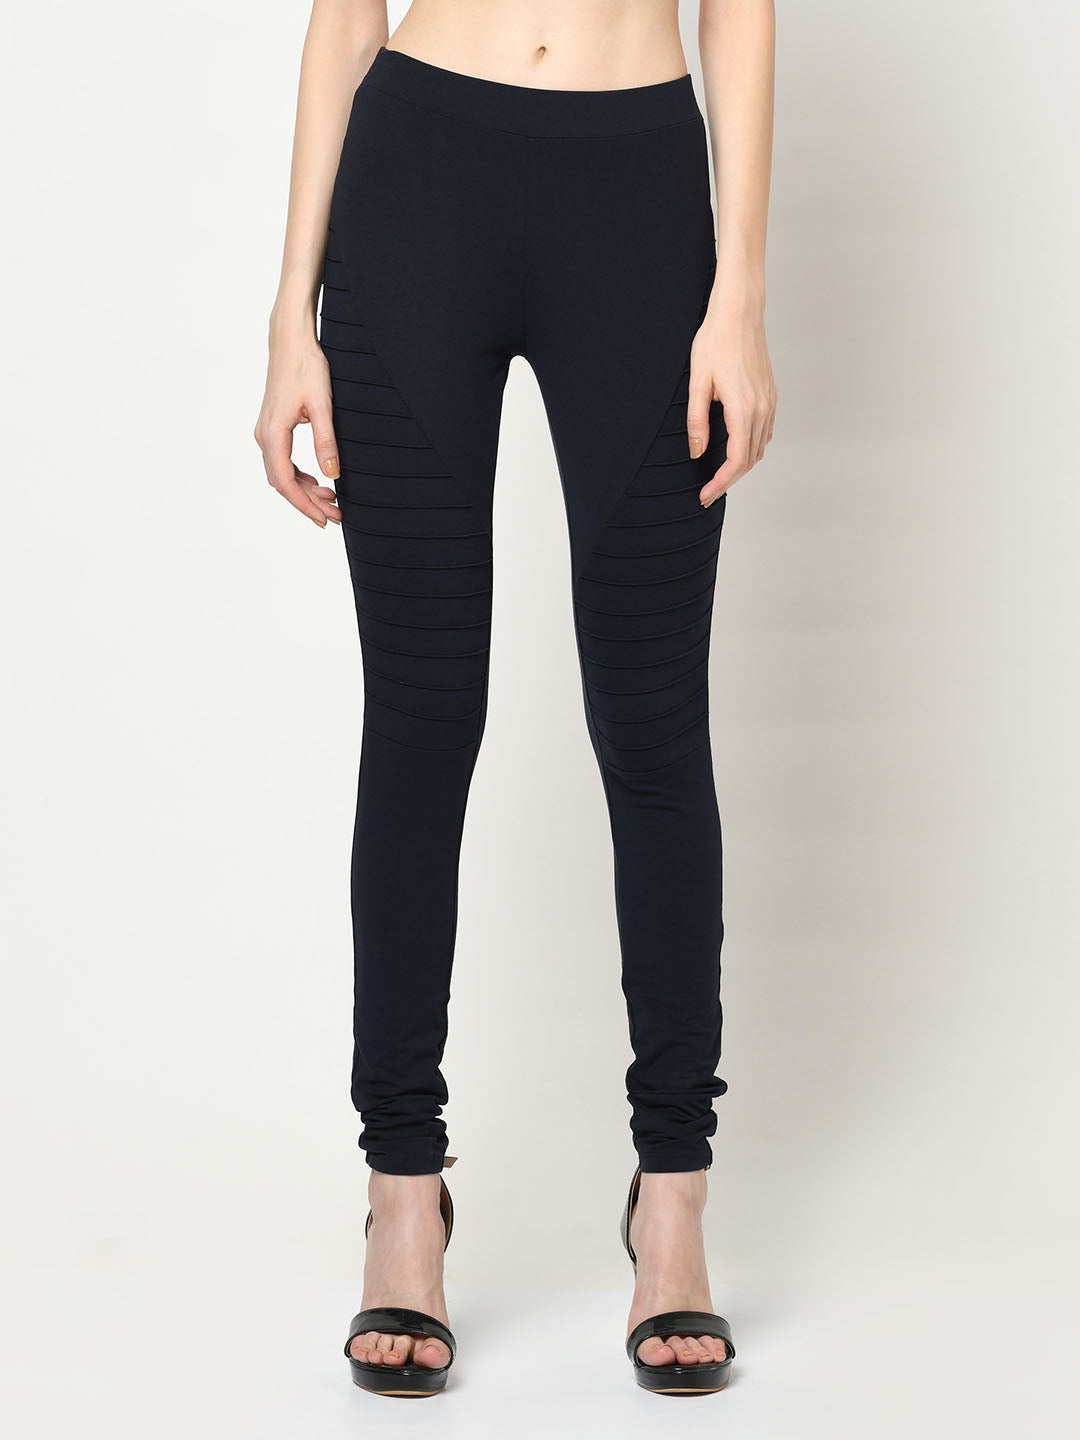 Black Jeggings With Side Ridges